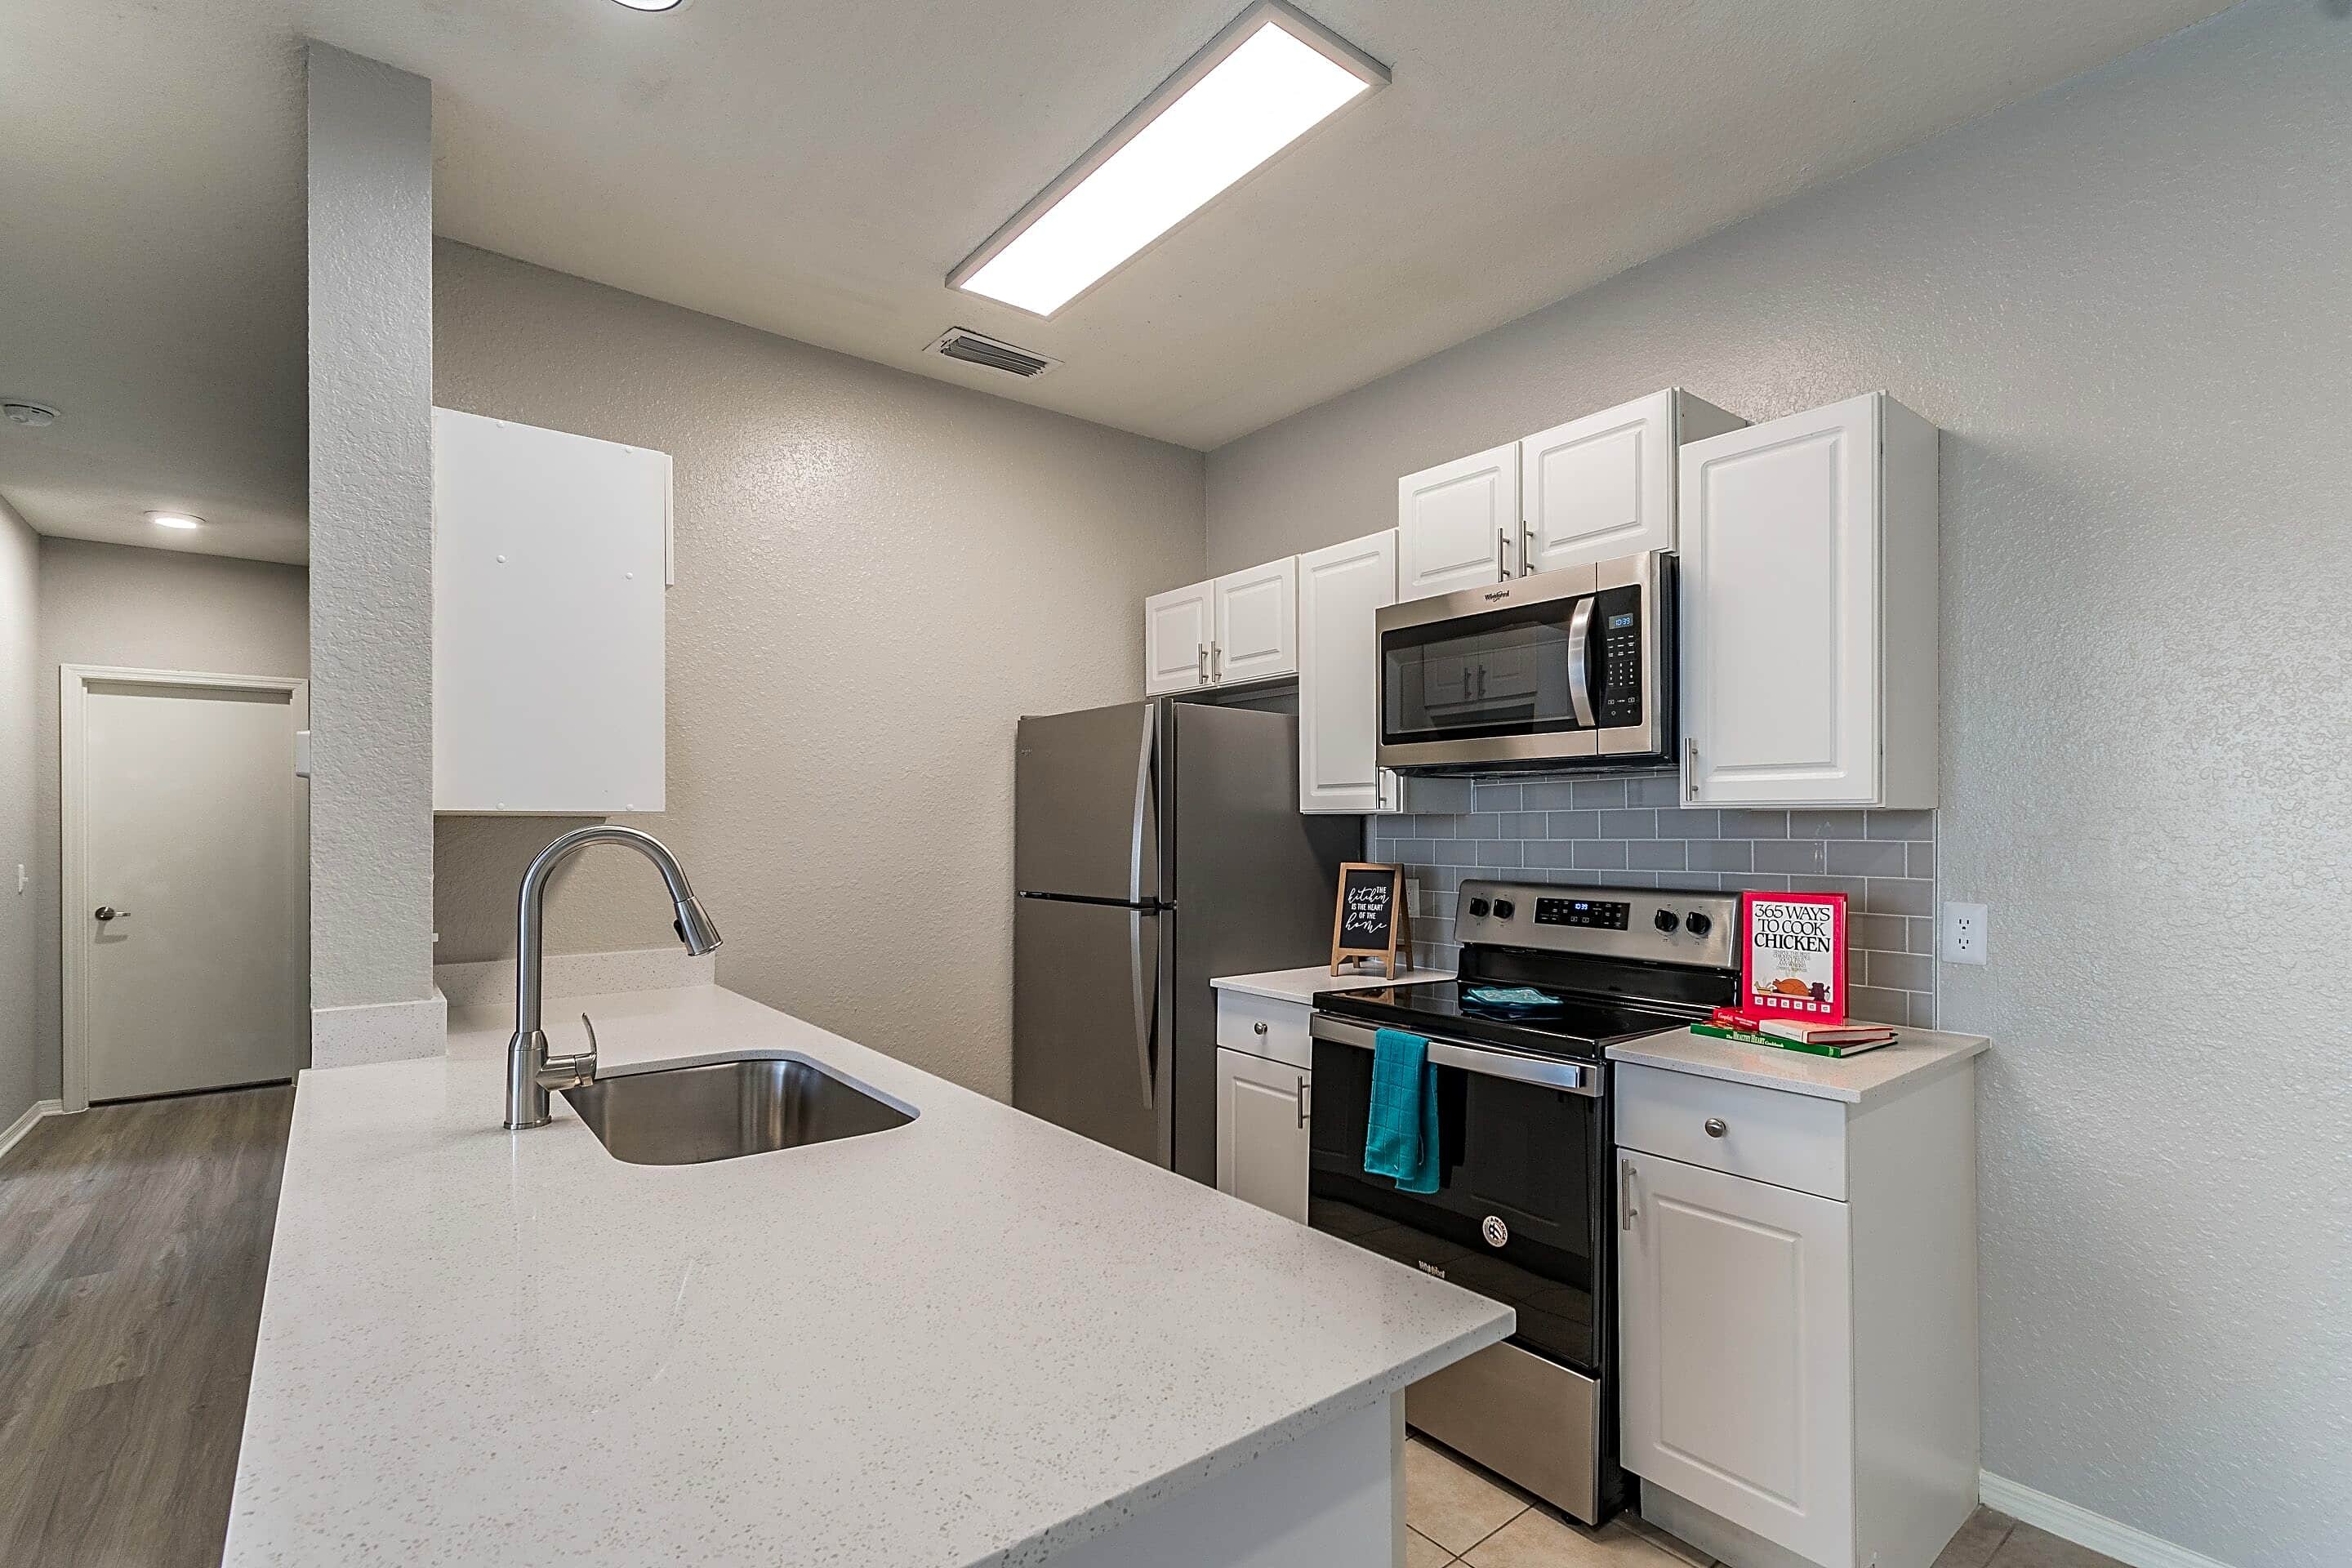 Apartments Near Florida Southern Village At Lake Highland for Florida Southern College Students in Lakeland, FL